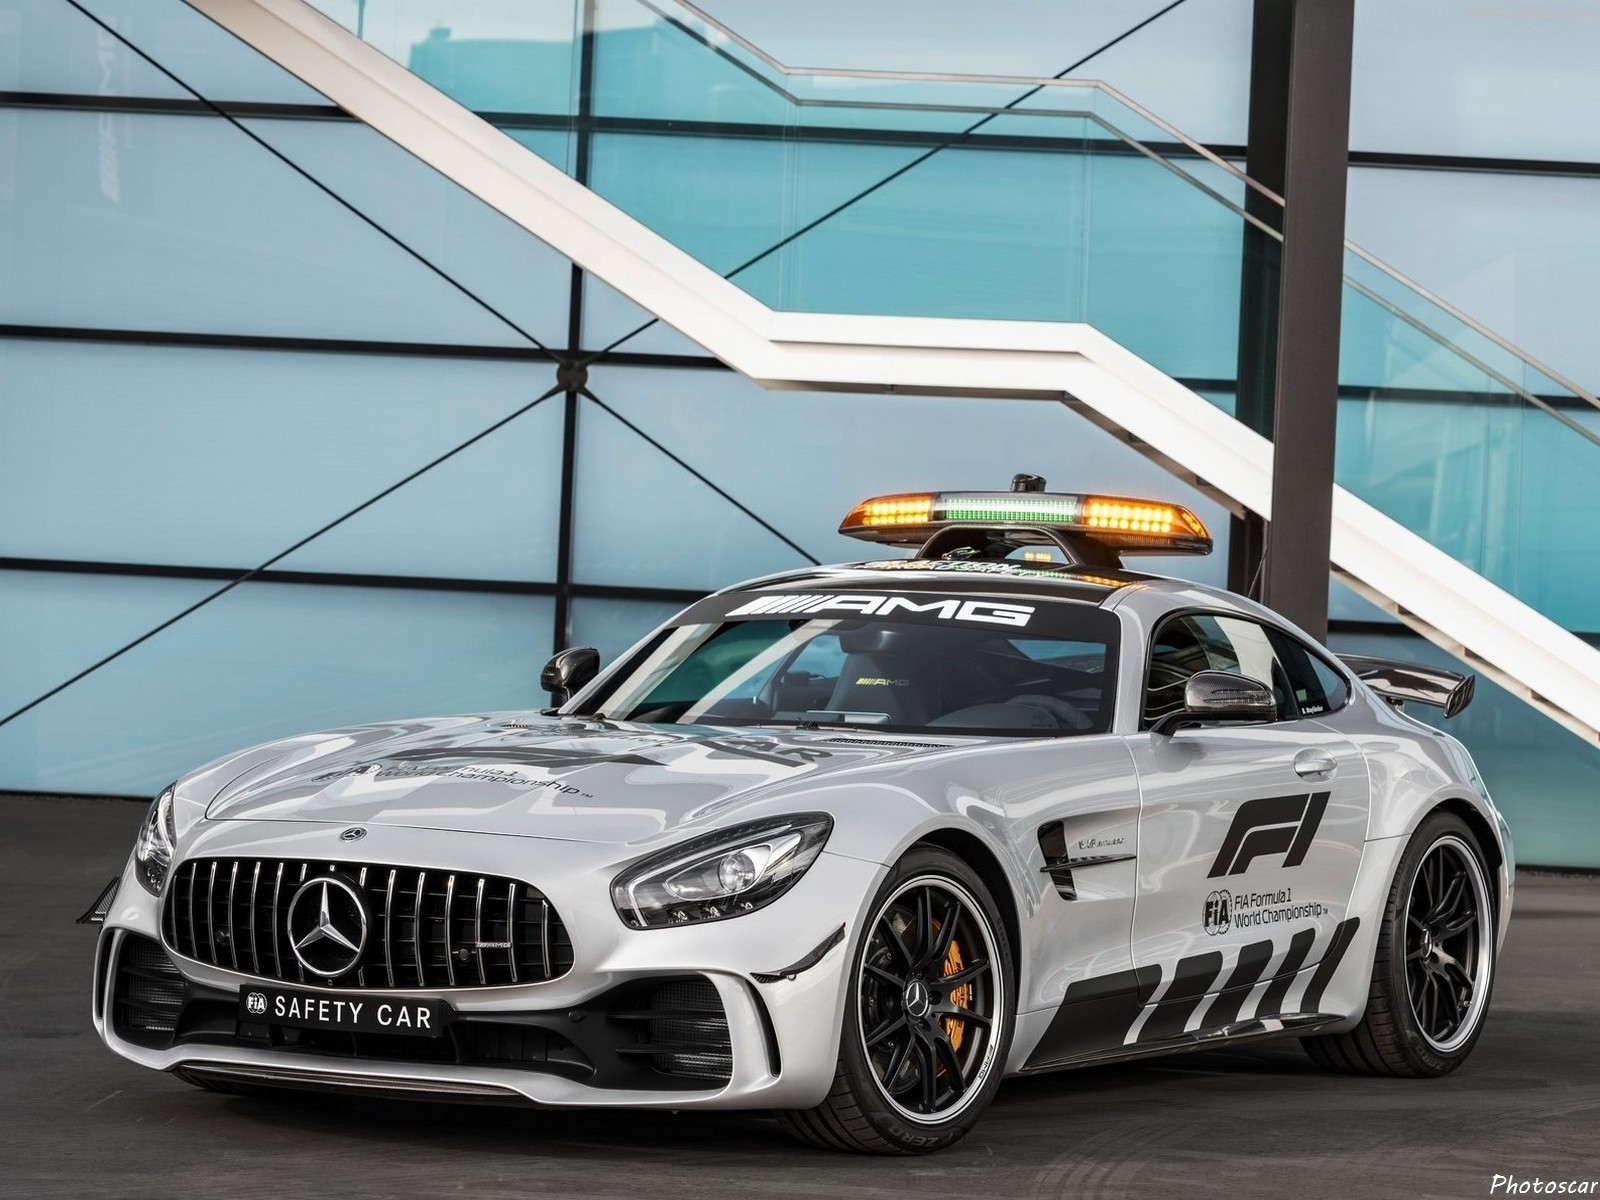 mercedes amg gt r f1 safety car 2018 la plus puissante. Black Bedroom Furniture Sets. Home Design Ideas